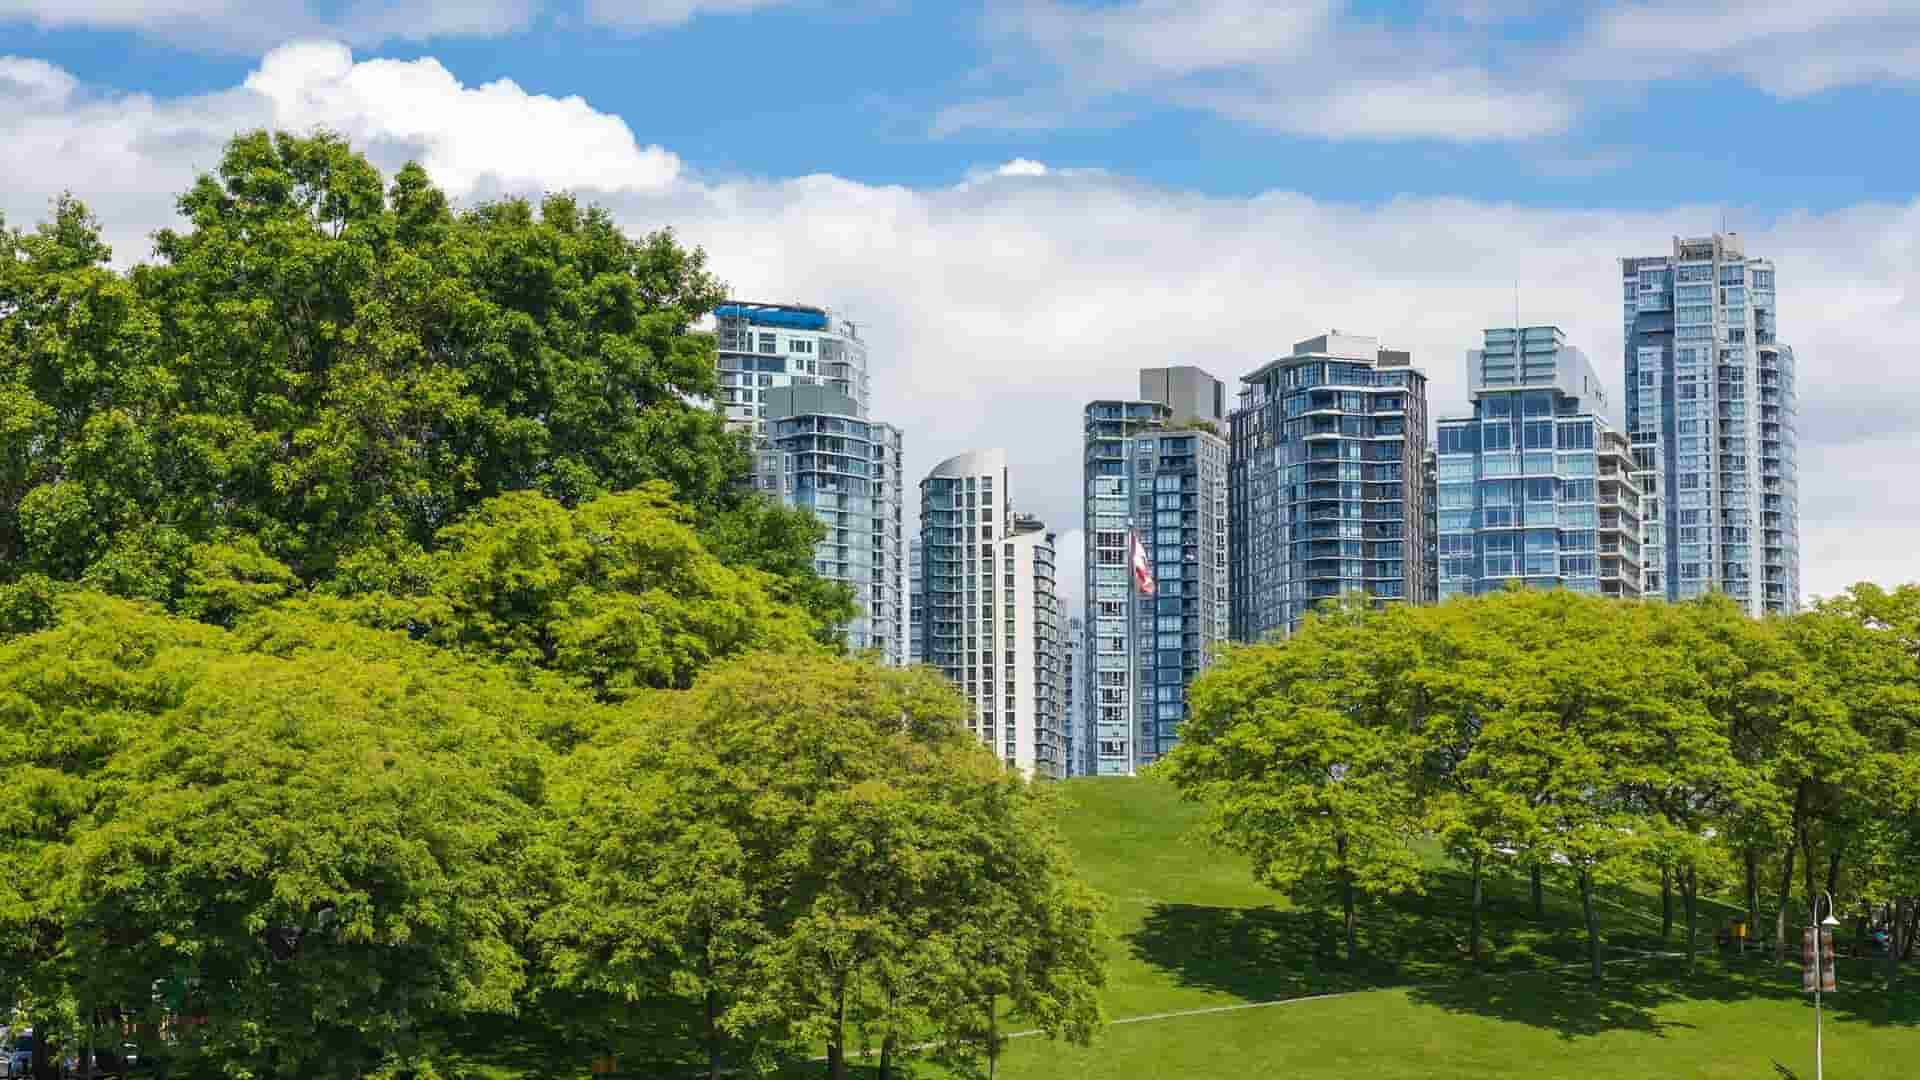 Measuring Changes in Urban Greenness Across Canada